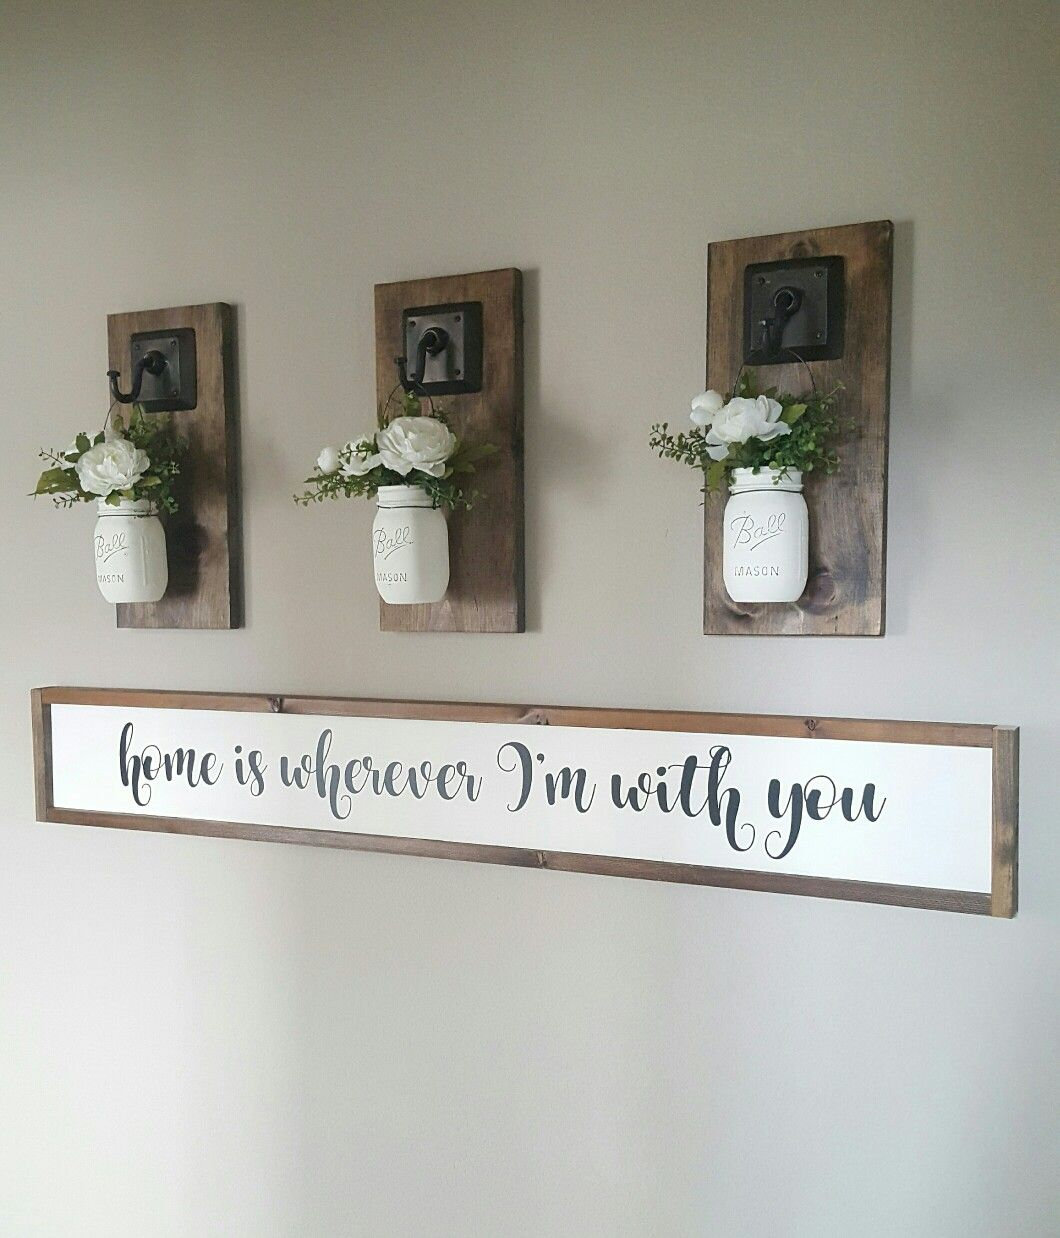 Home Decor Mason Jars And Wood Sign I To Craft And Build Things For My Home Farmhouse Shelves Decor Farmhouse Shelves Farmhouse Decor Living Room